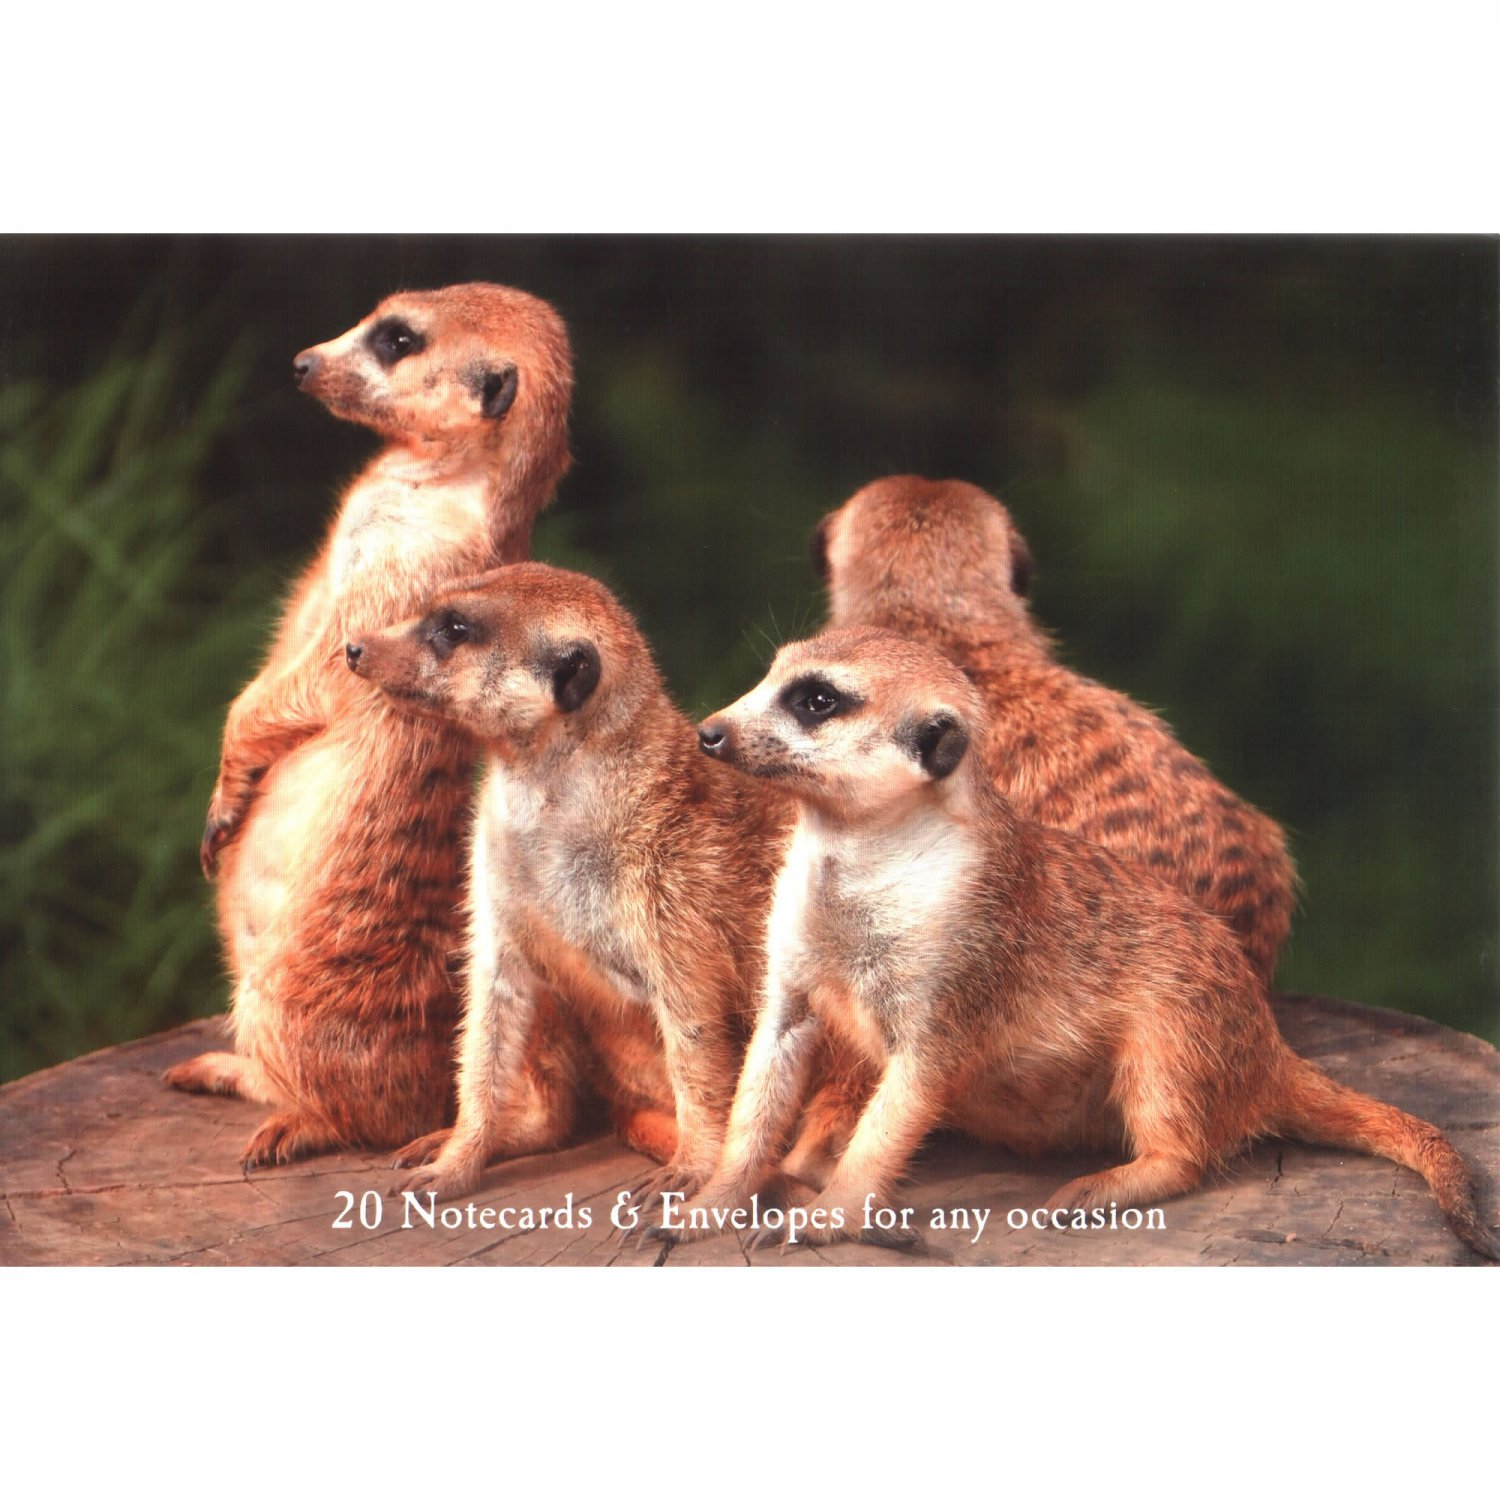 Meerkats - Set of 20 Notecards and Envelopes with Photos of Meerkats